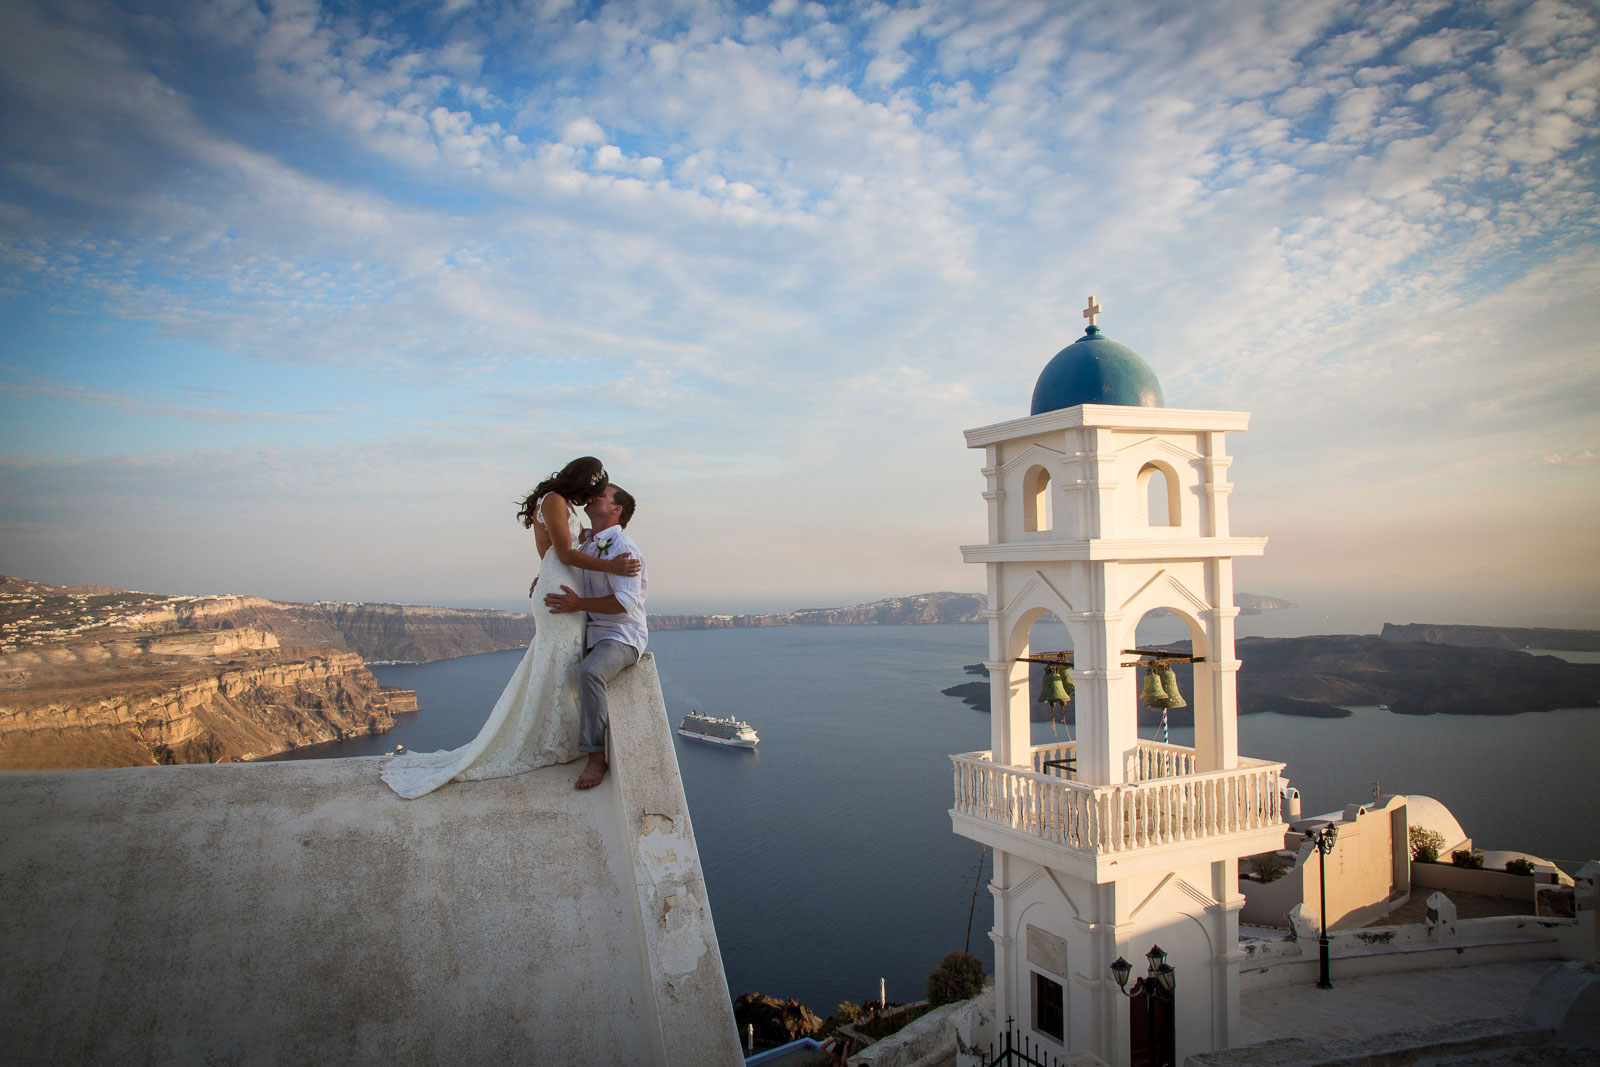 Santorini, Greece Wedding Photographer - Thanasis Papadopoulos - ap photography